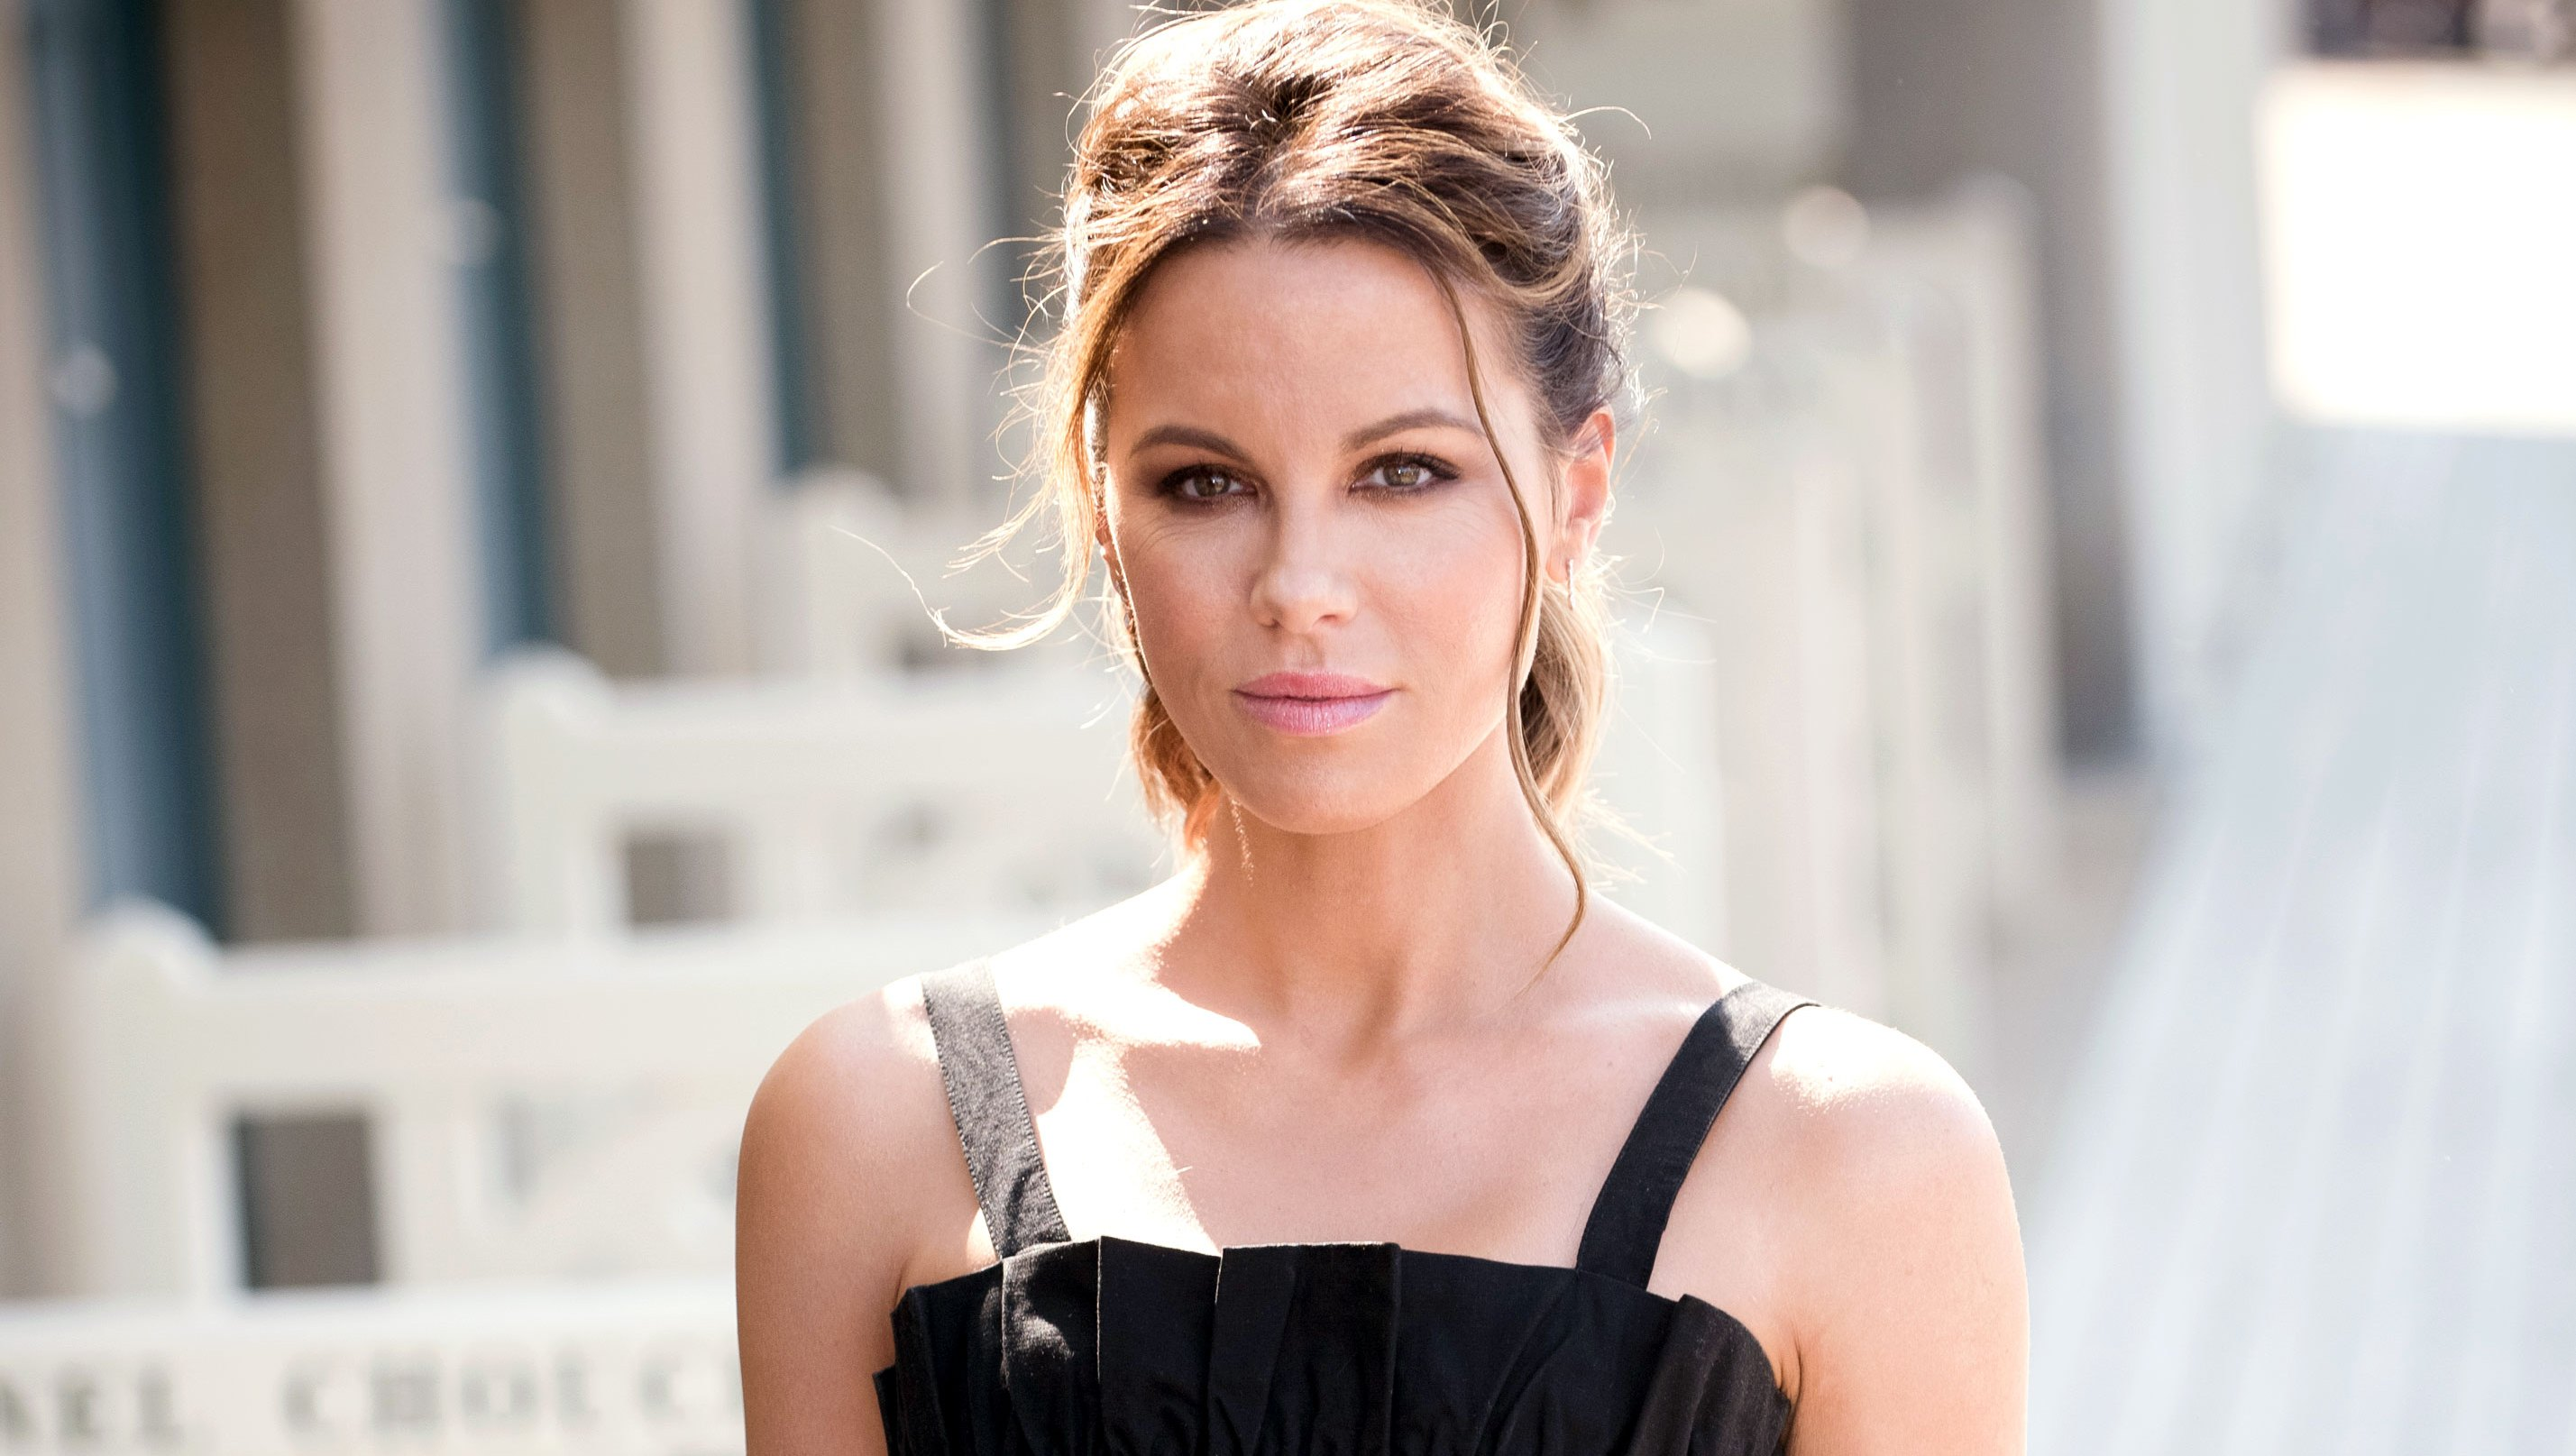 Kate Beckinsale Reveals She's Been Hospitalized After Suffering Ruptured Ovarian Cysts